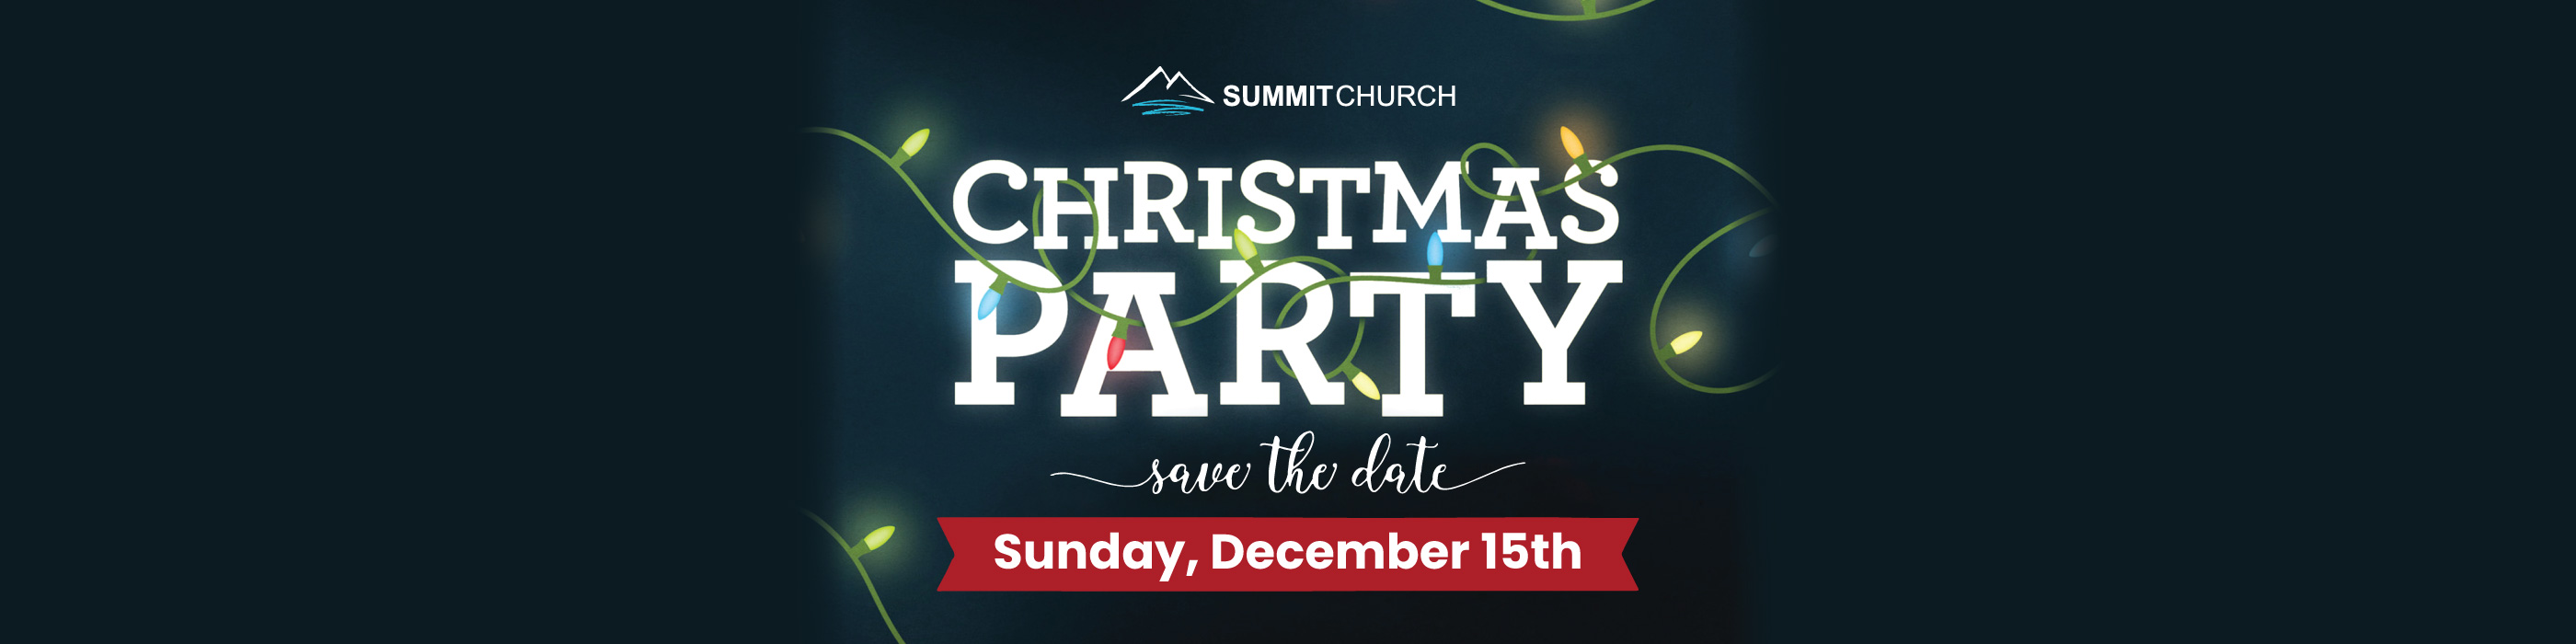 Summit-Christmas-Party-121519-Save-the-Date-WEB-2800x700